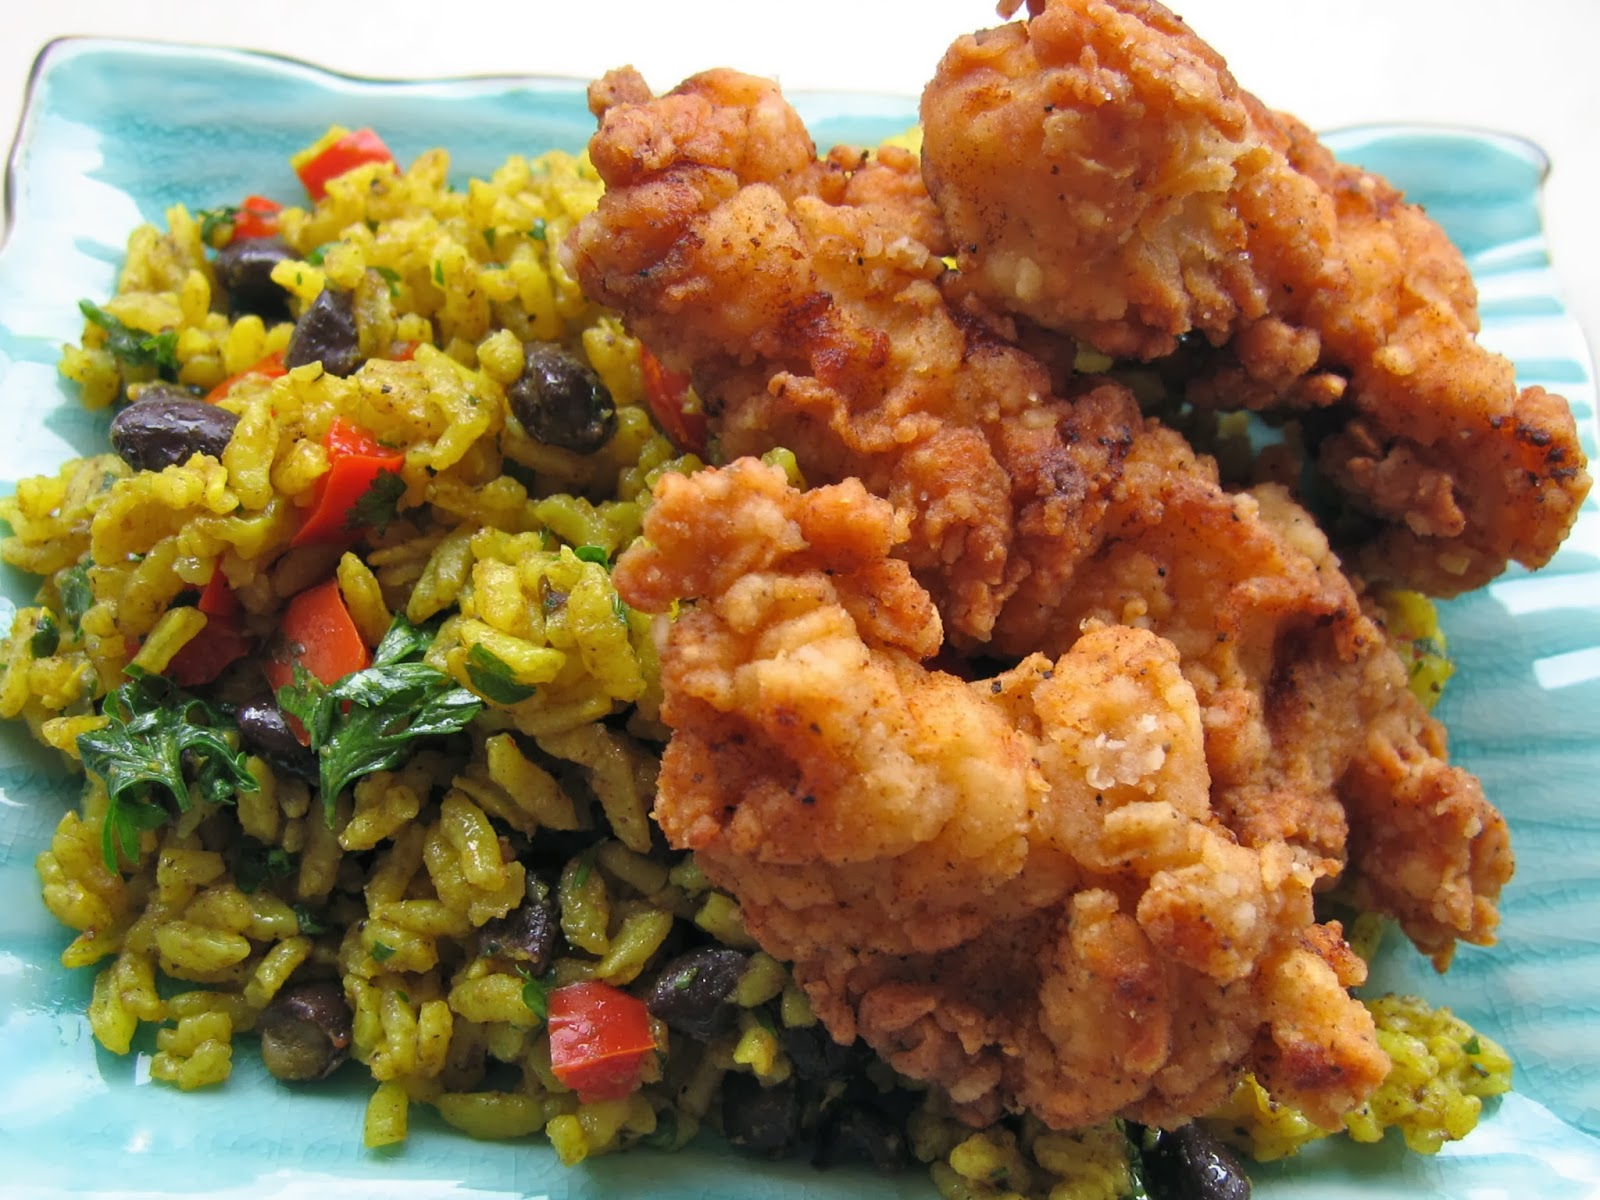 rice liborios latin cafe yellow tia s authentic latin food posted by ...